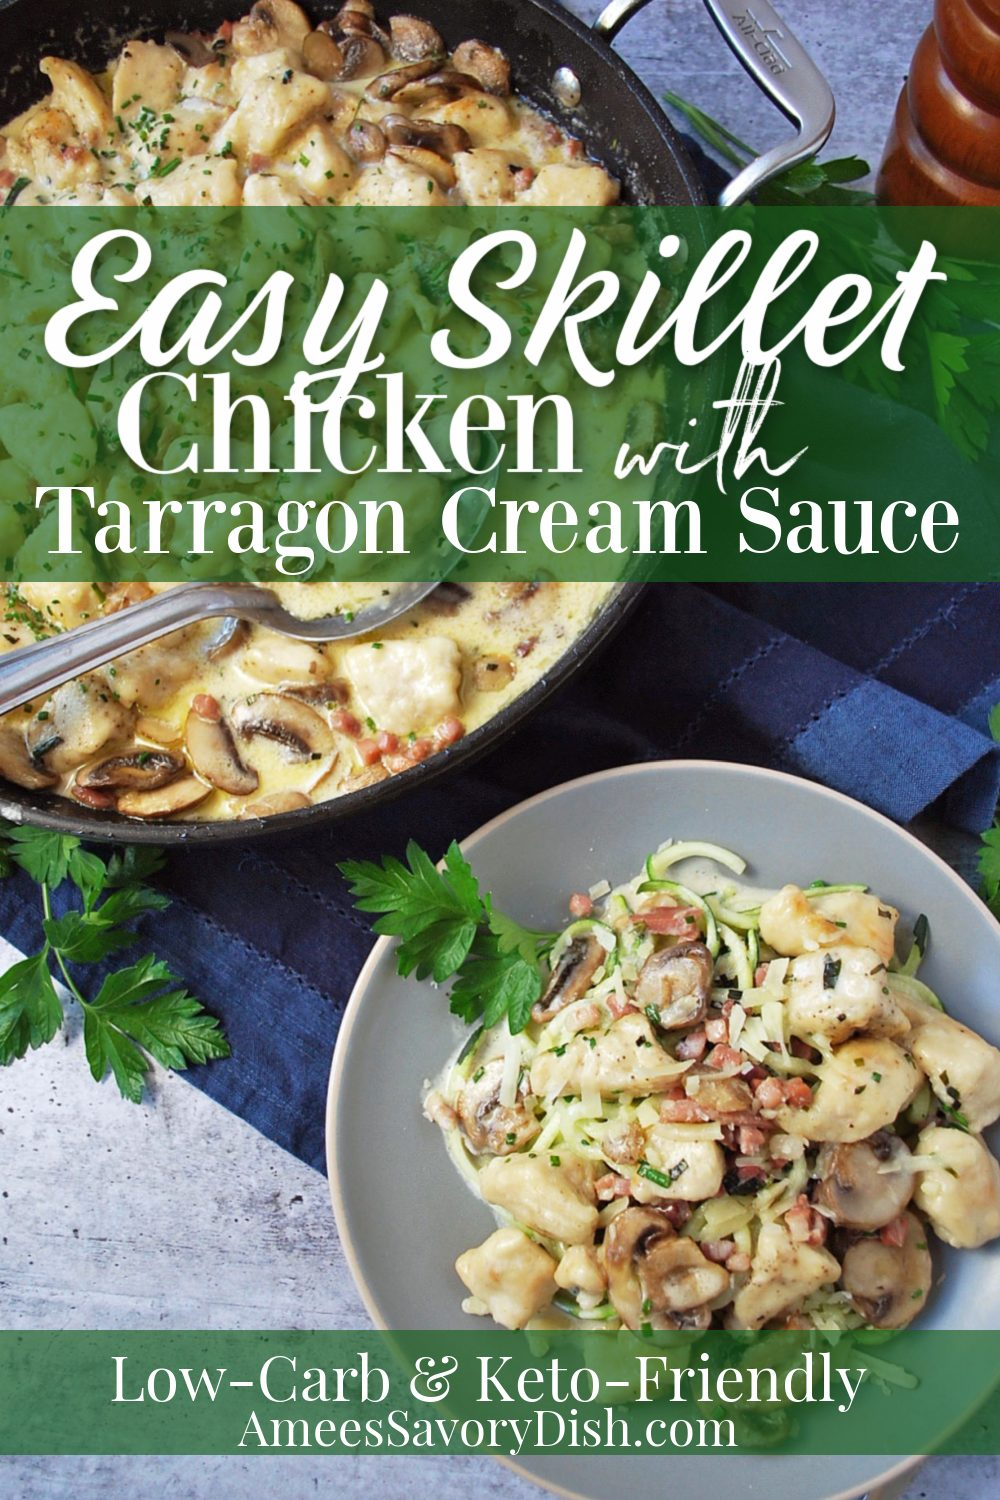 This low-carb and keto diet-friendly skillet Tarragon chicken recipe is made with boneless skinless chicken breasts, prosciutto ham, mushrooms, dry white wine (or chicken broth), cream, and fresh herbs.  Best of all this skillet chicken recipe is easy to make and ready in 30 minutes! #skilletmeals #skilletchicken #ketorecipe #ketodiet #lowcarb #lowcarbchicken #easychickenrecipes via @Ameessavorydish